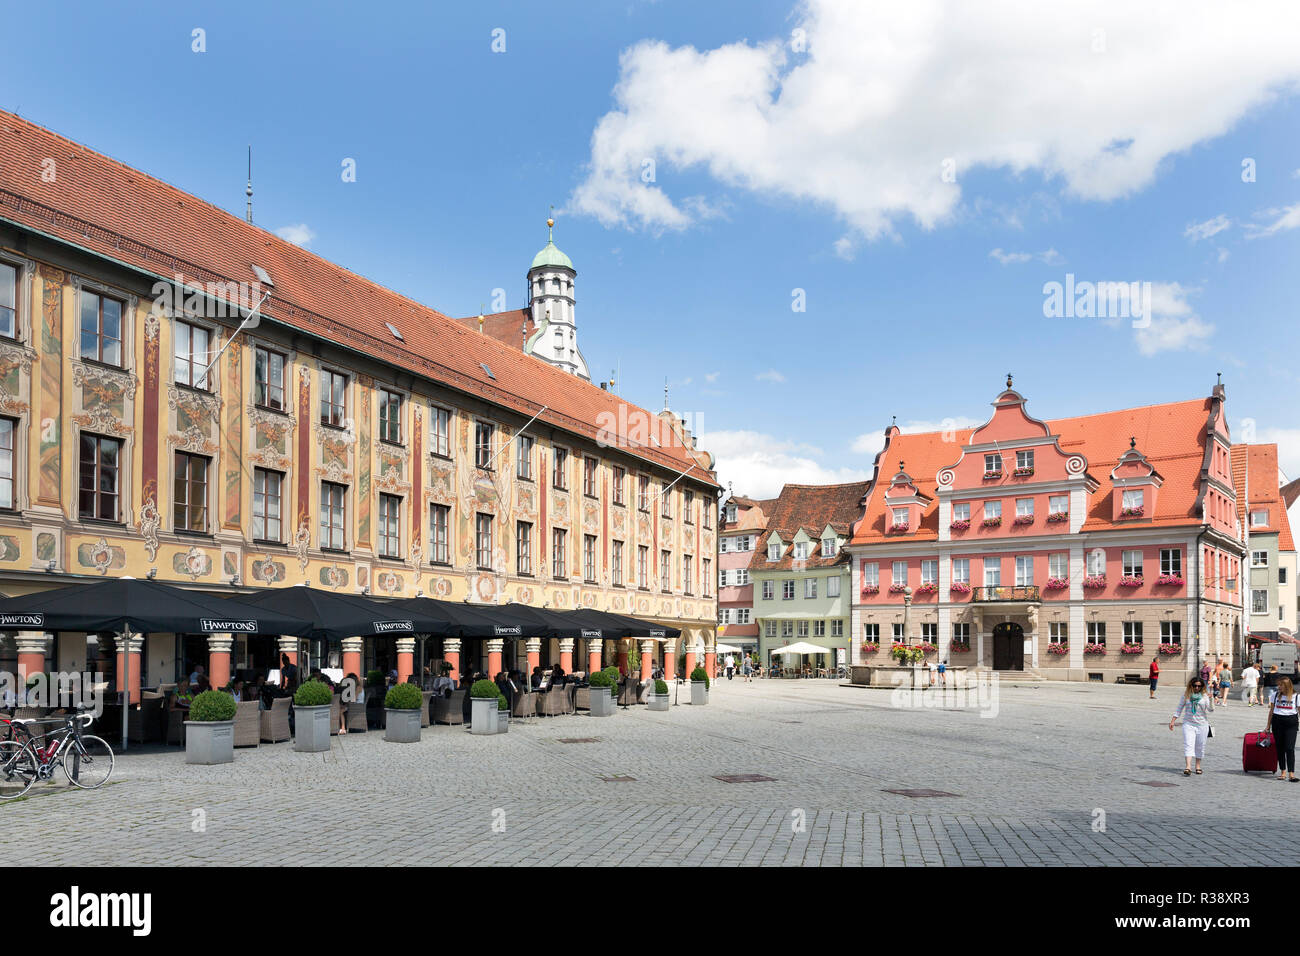 Steering house, administration building at the marketplace, House of the Grand Guild at the back, Memmingen, Swabia, Bavaria - Stock Image